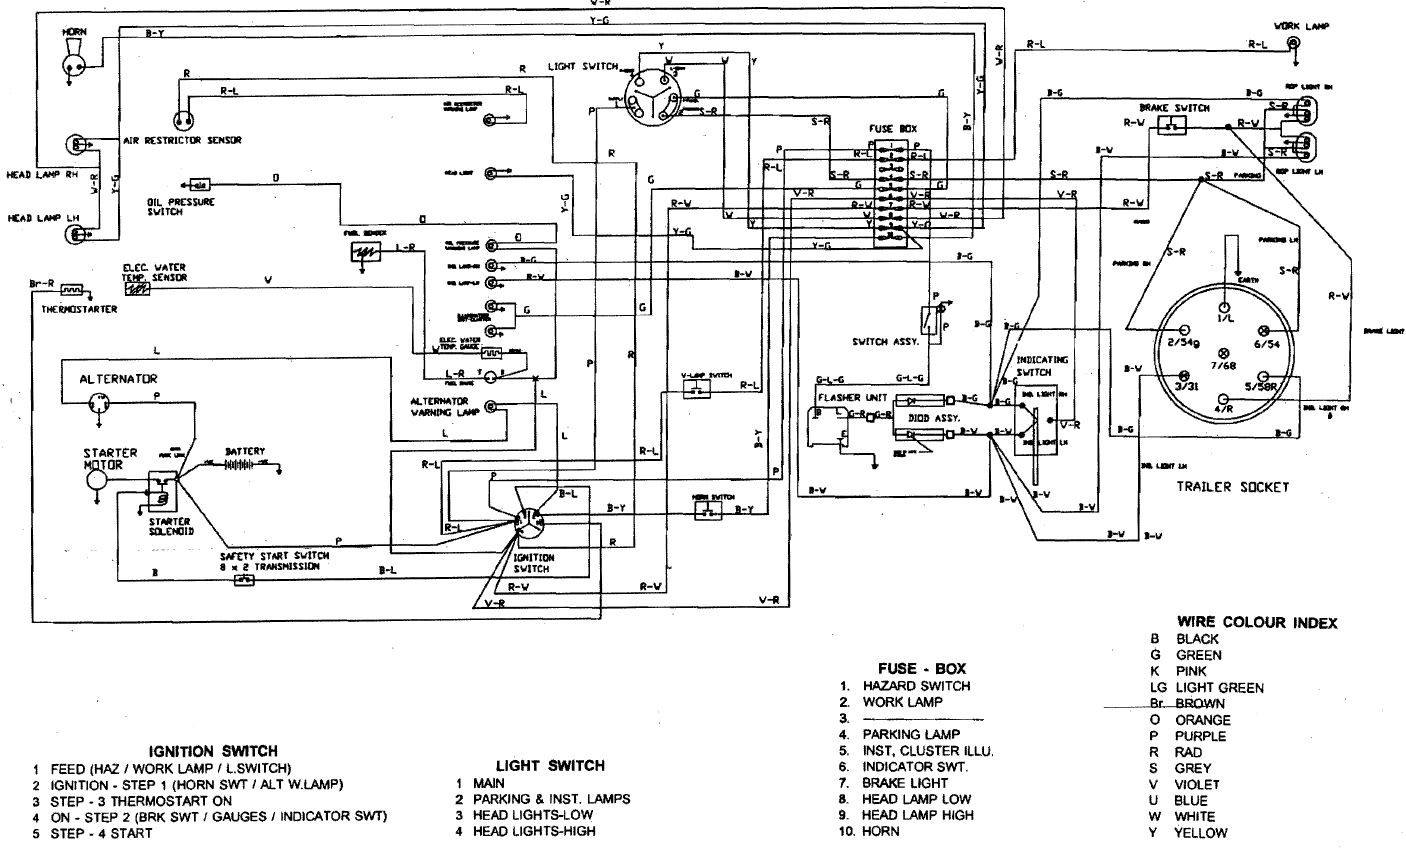 starter switch wiring diagram for kubota l175 wiring diagram Kubota G1800 Key Switch Wiring Diagram kubota tractor starter wiring diagrams wiring diagramdiesel tractor ignition switch wiring diagram rxfkubota mower ignition switch